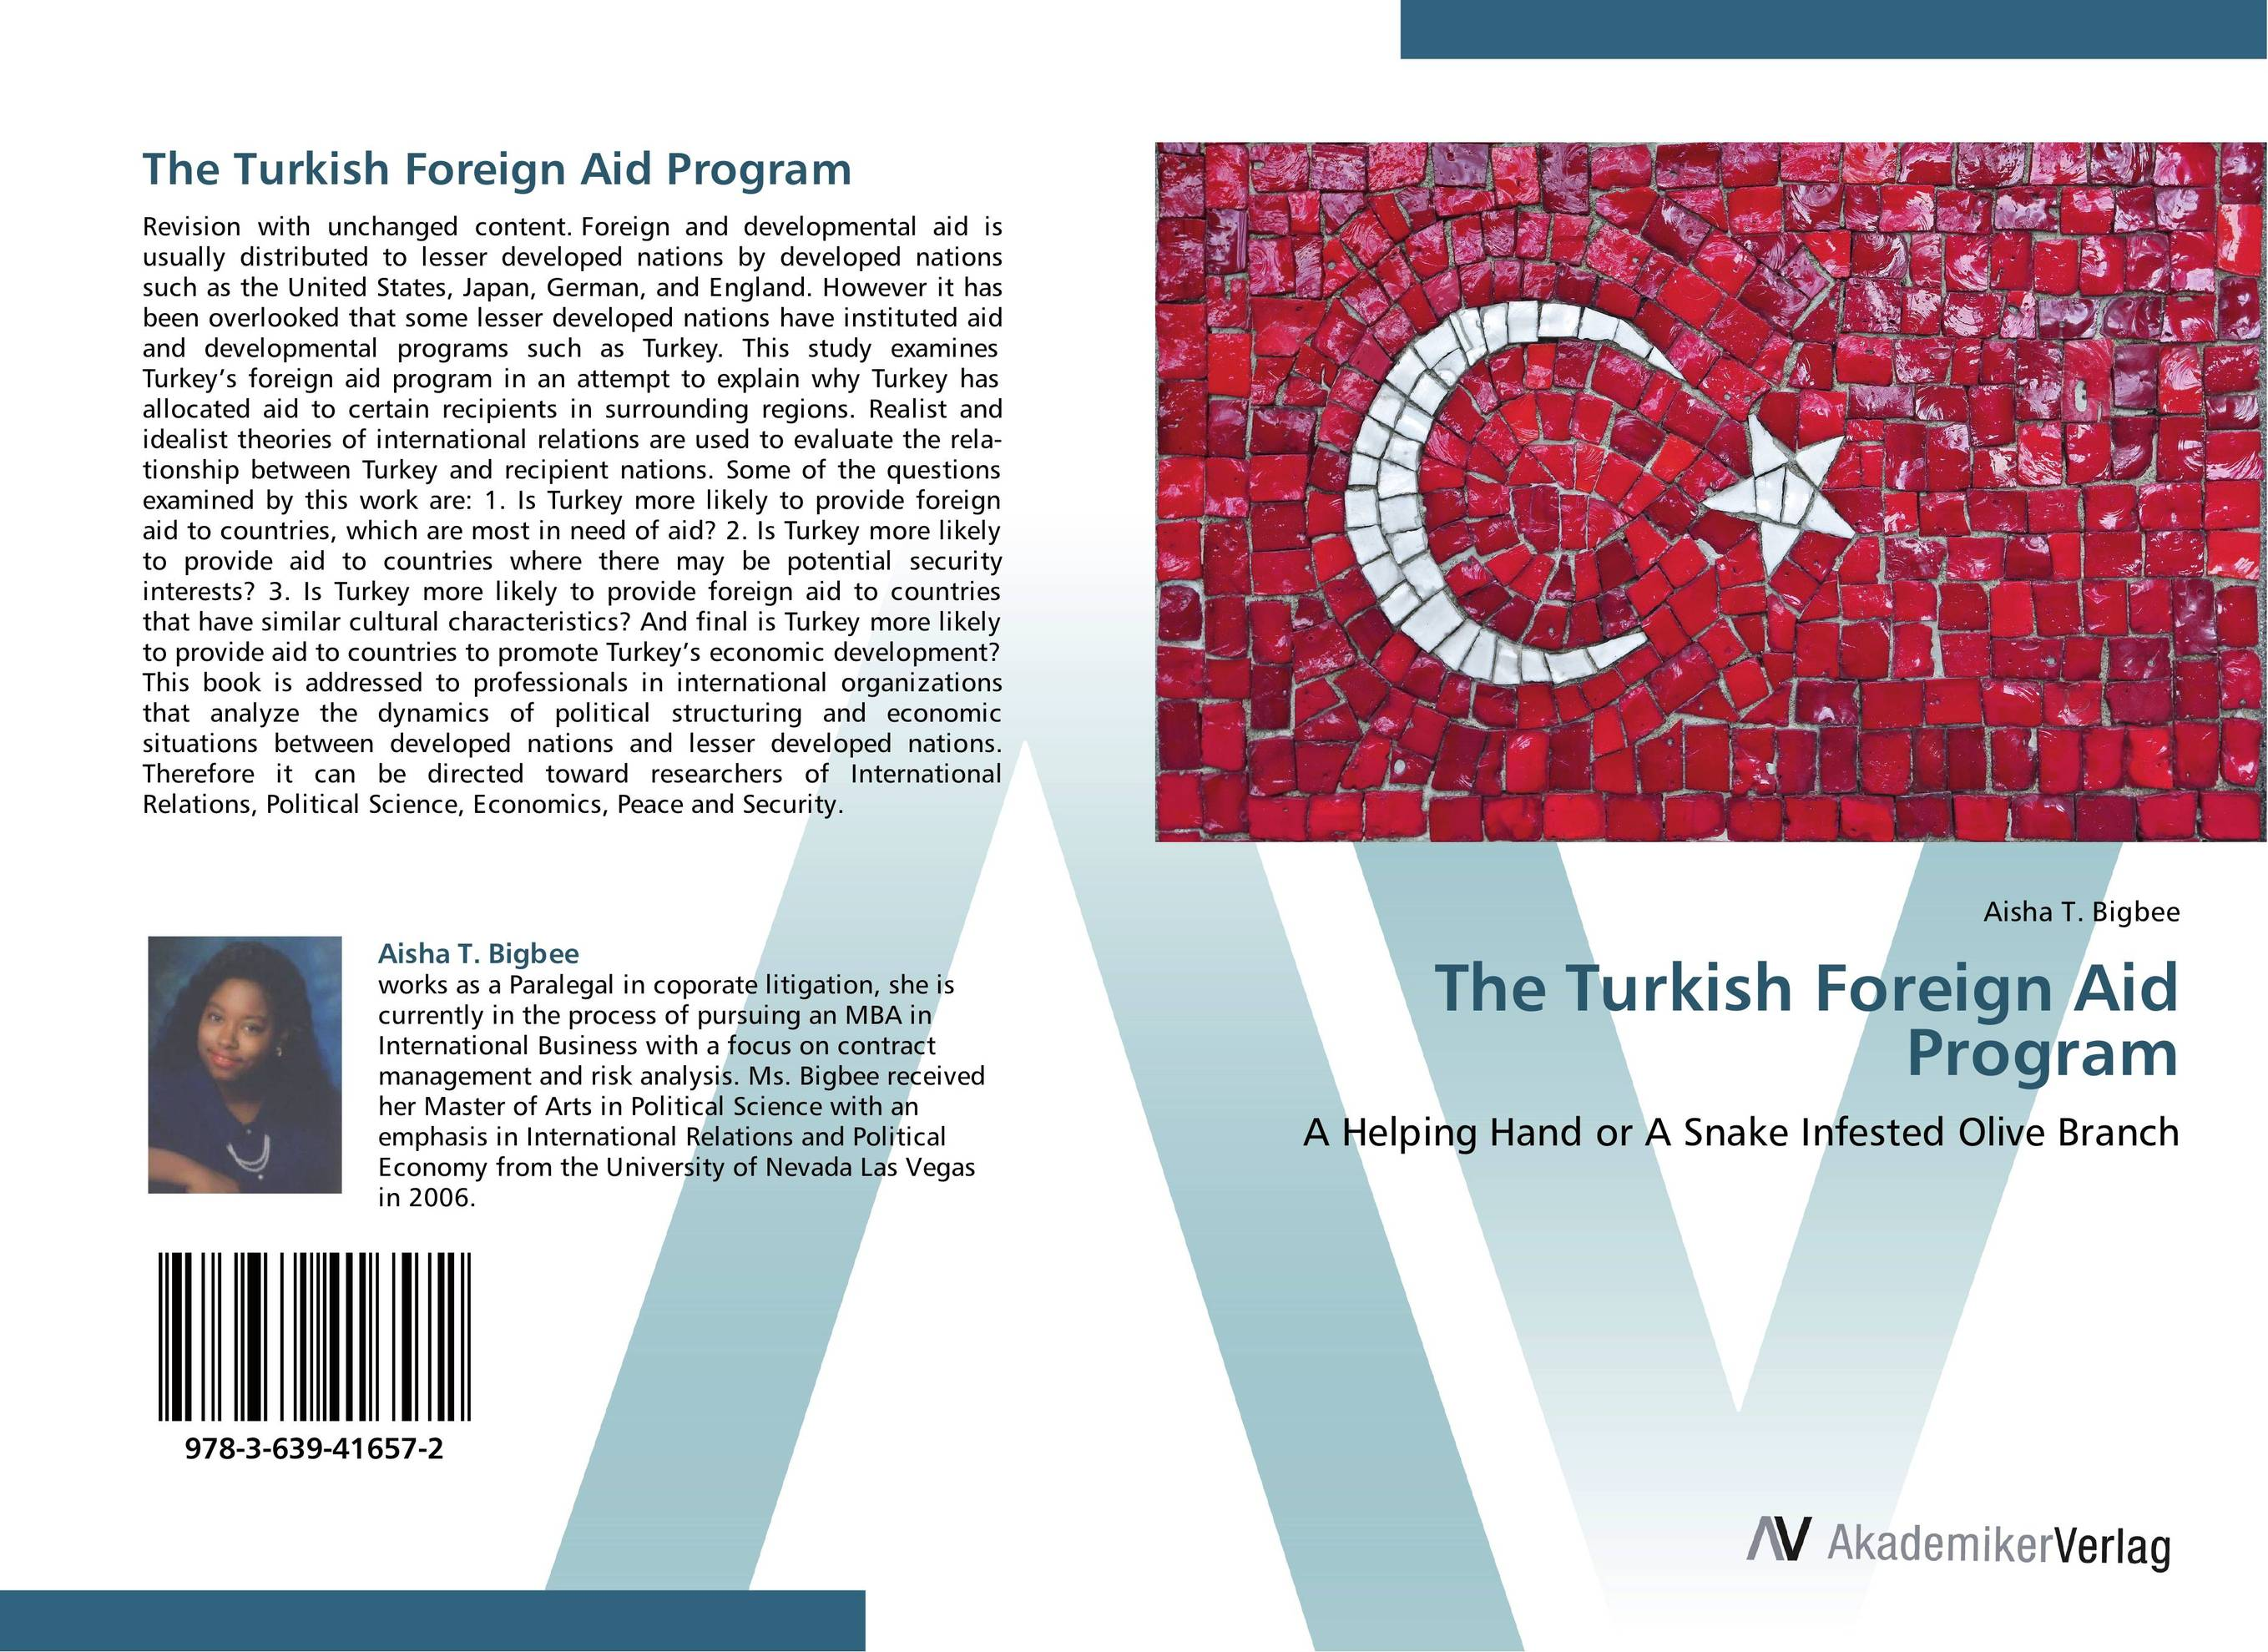 The Turkish Foreign Aid Program boy most likely to